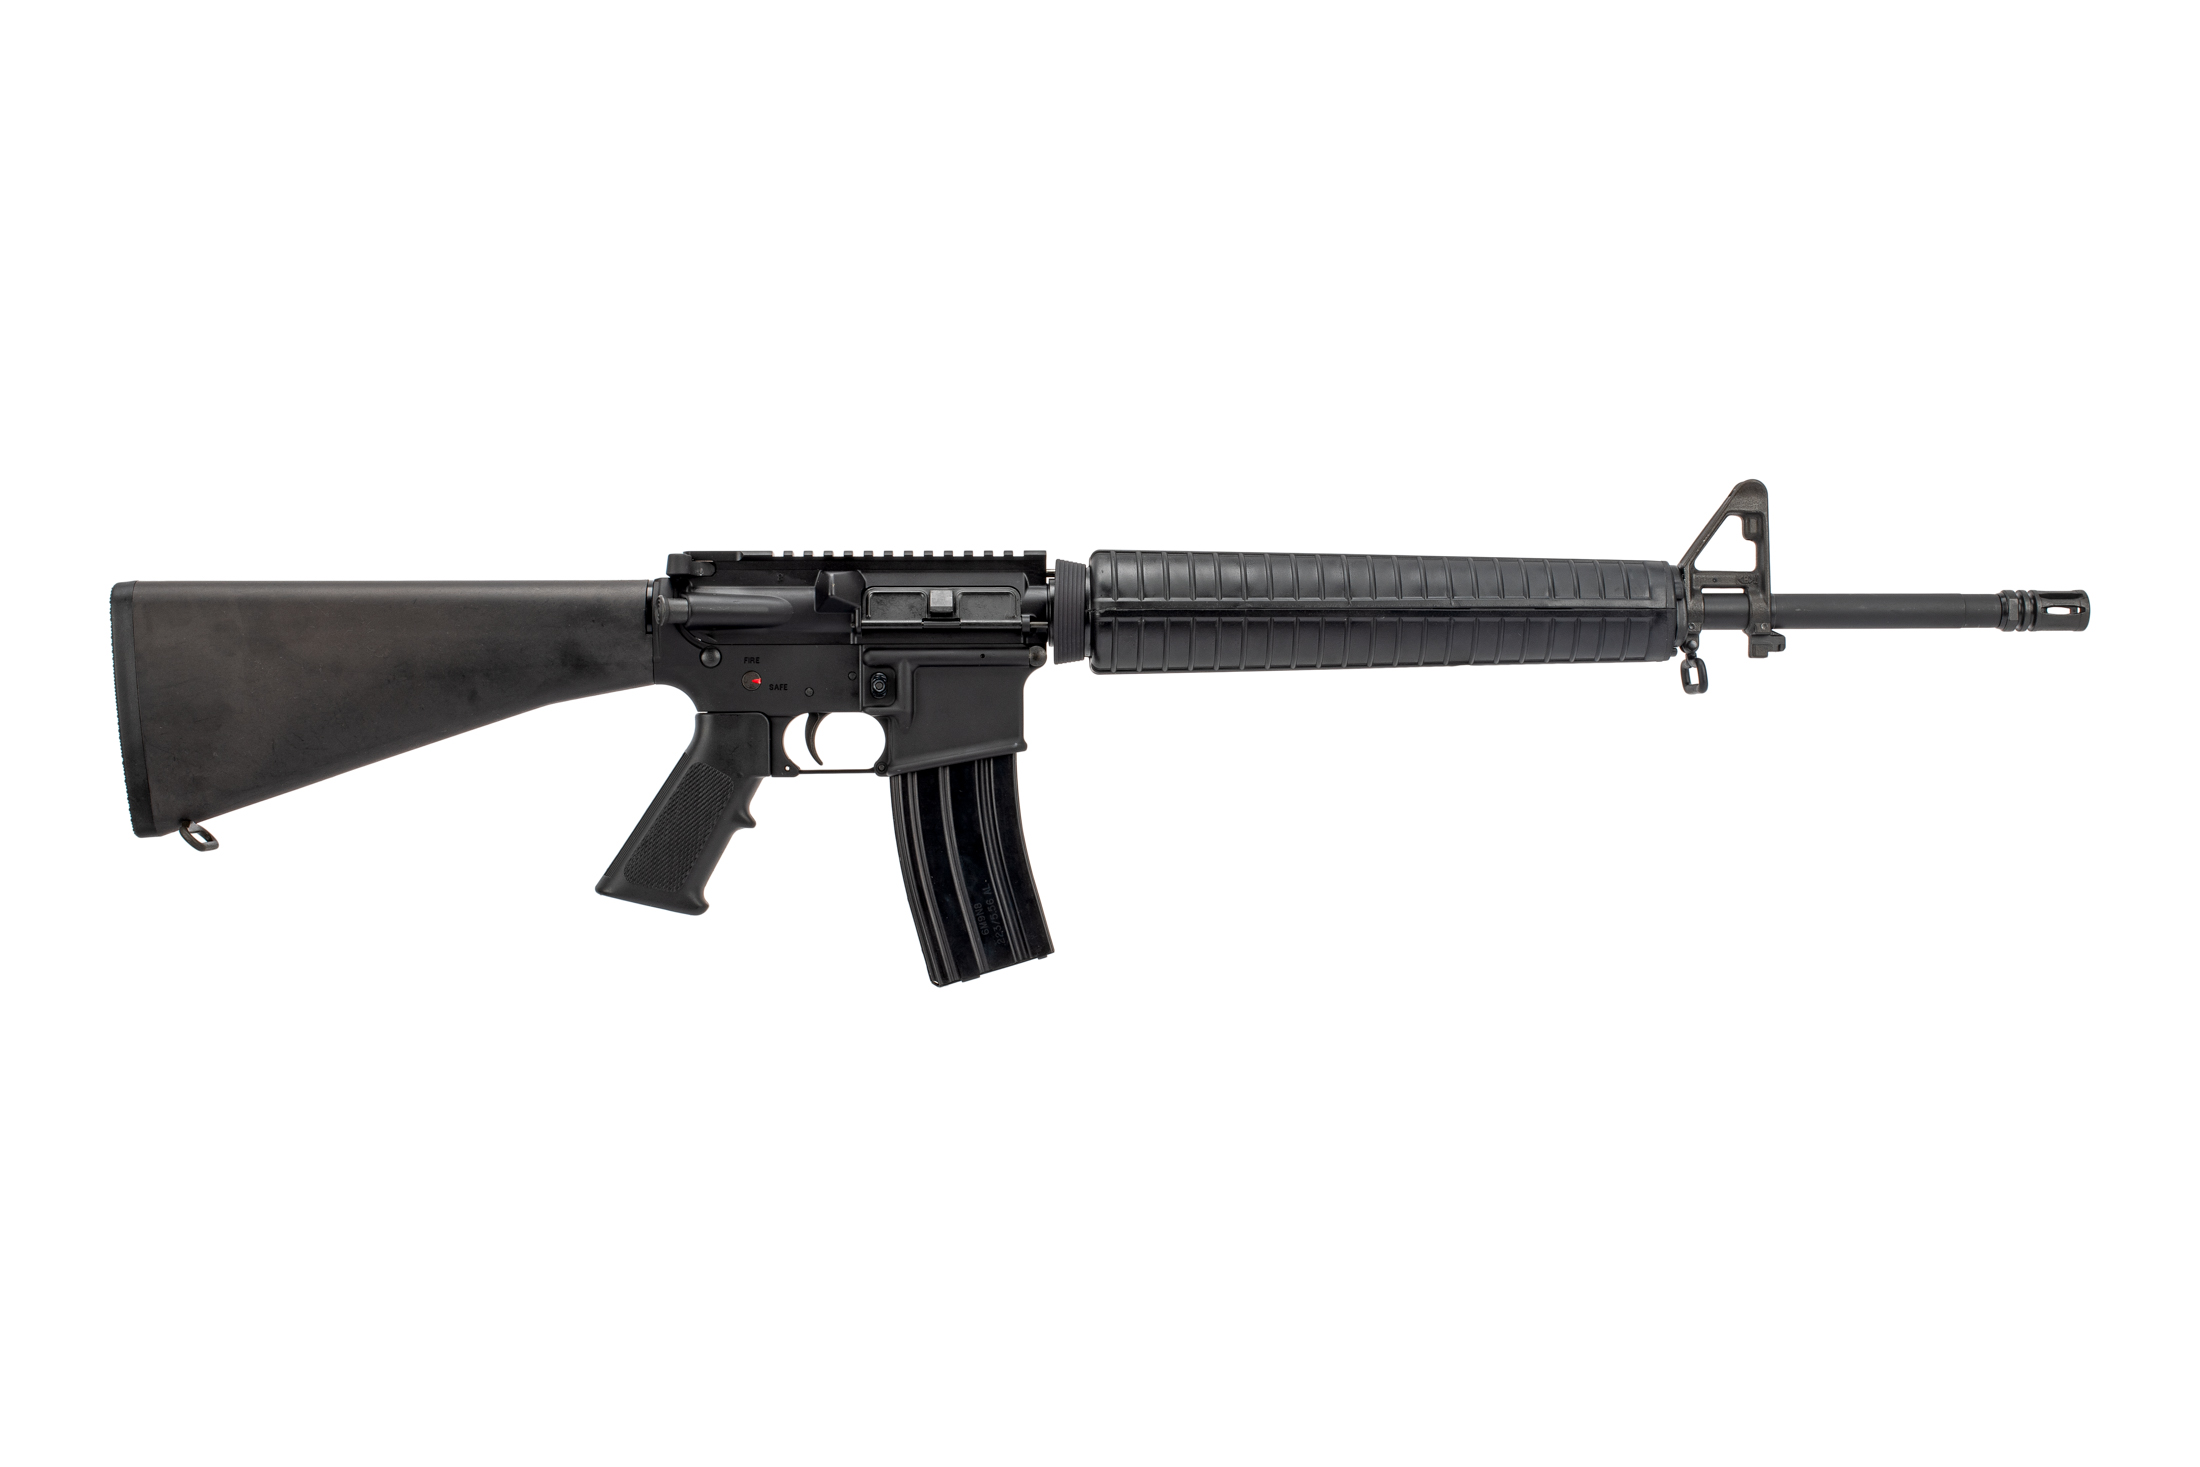 classic m16 pattern rifle with mil-spec charging handle